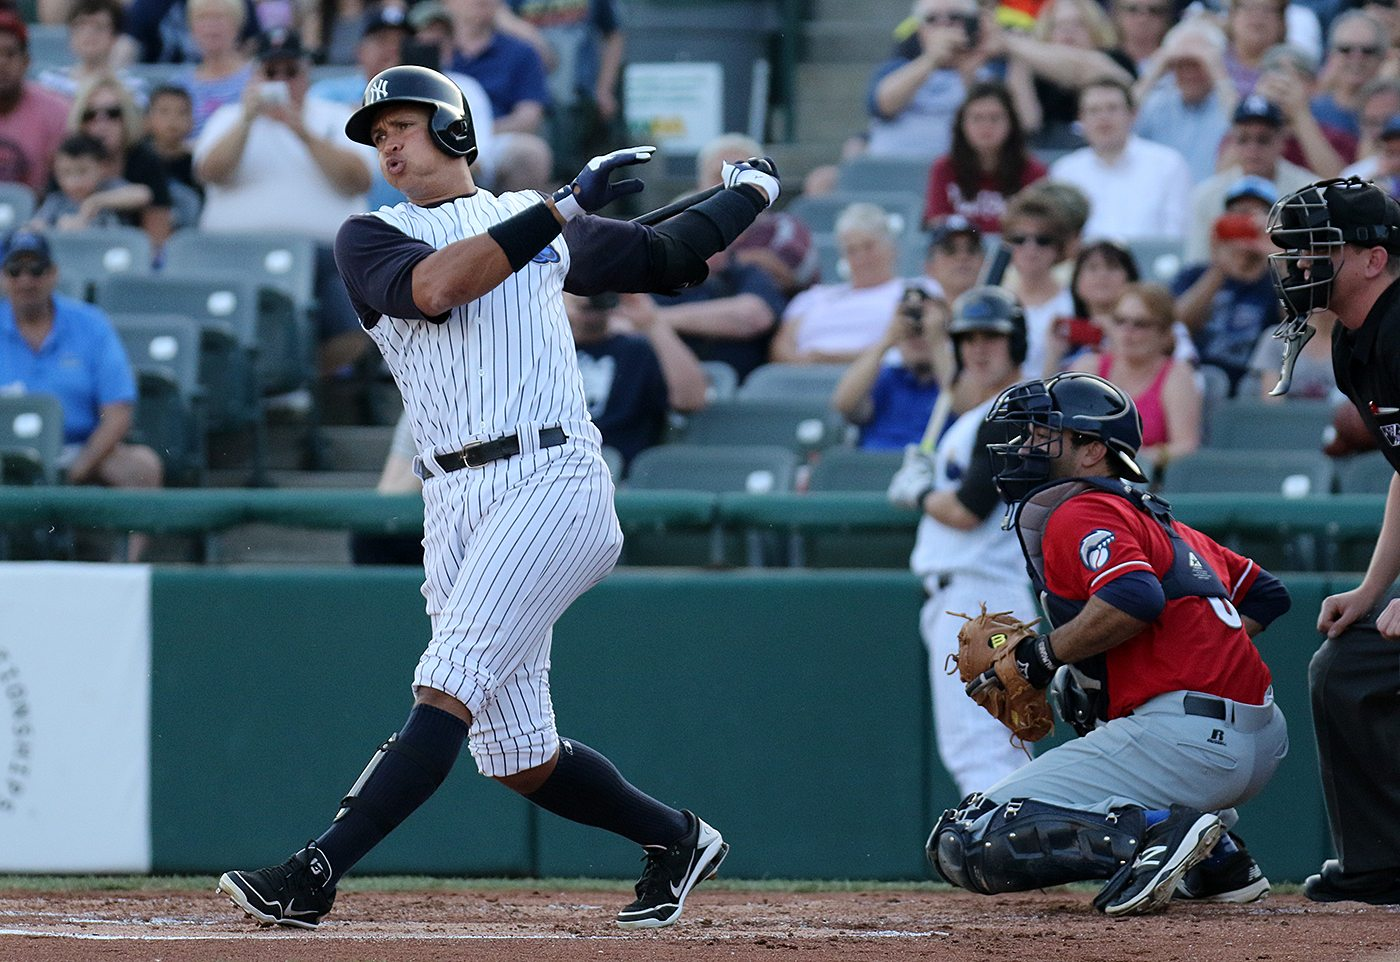 New York Yankees slugger Alex Rodriguez bats in the first inning at ARM & HAMMER Park in Trenton on Wednesday, May 25, 2016 during the first inning of a game against the New Hampshire Fisher Cats. Rodriguez joined the Double A Yankee farm team for a second day as part of a rehab assignment. Photo by Martin Griff